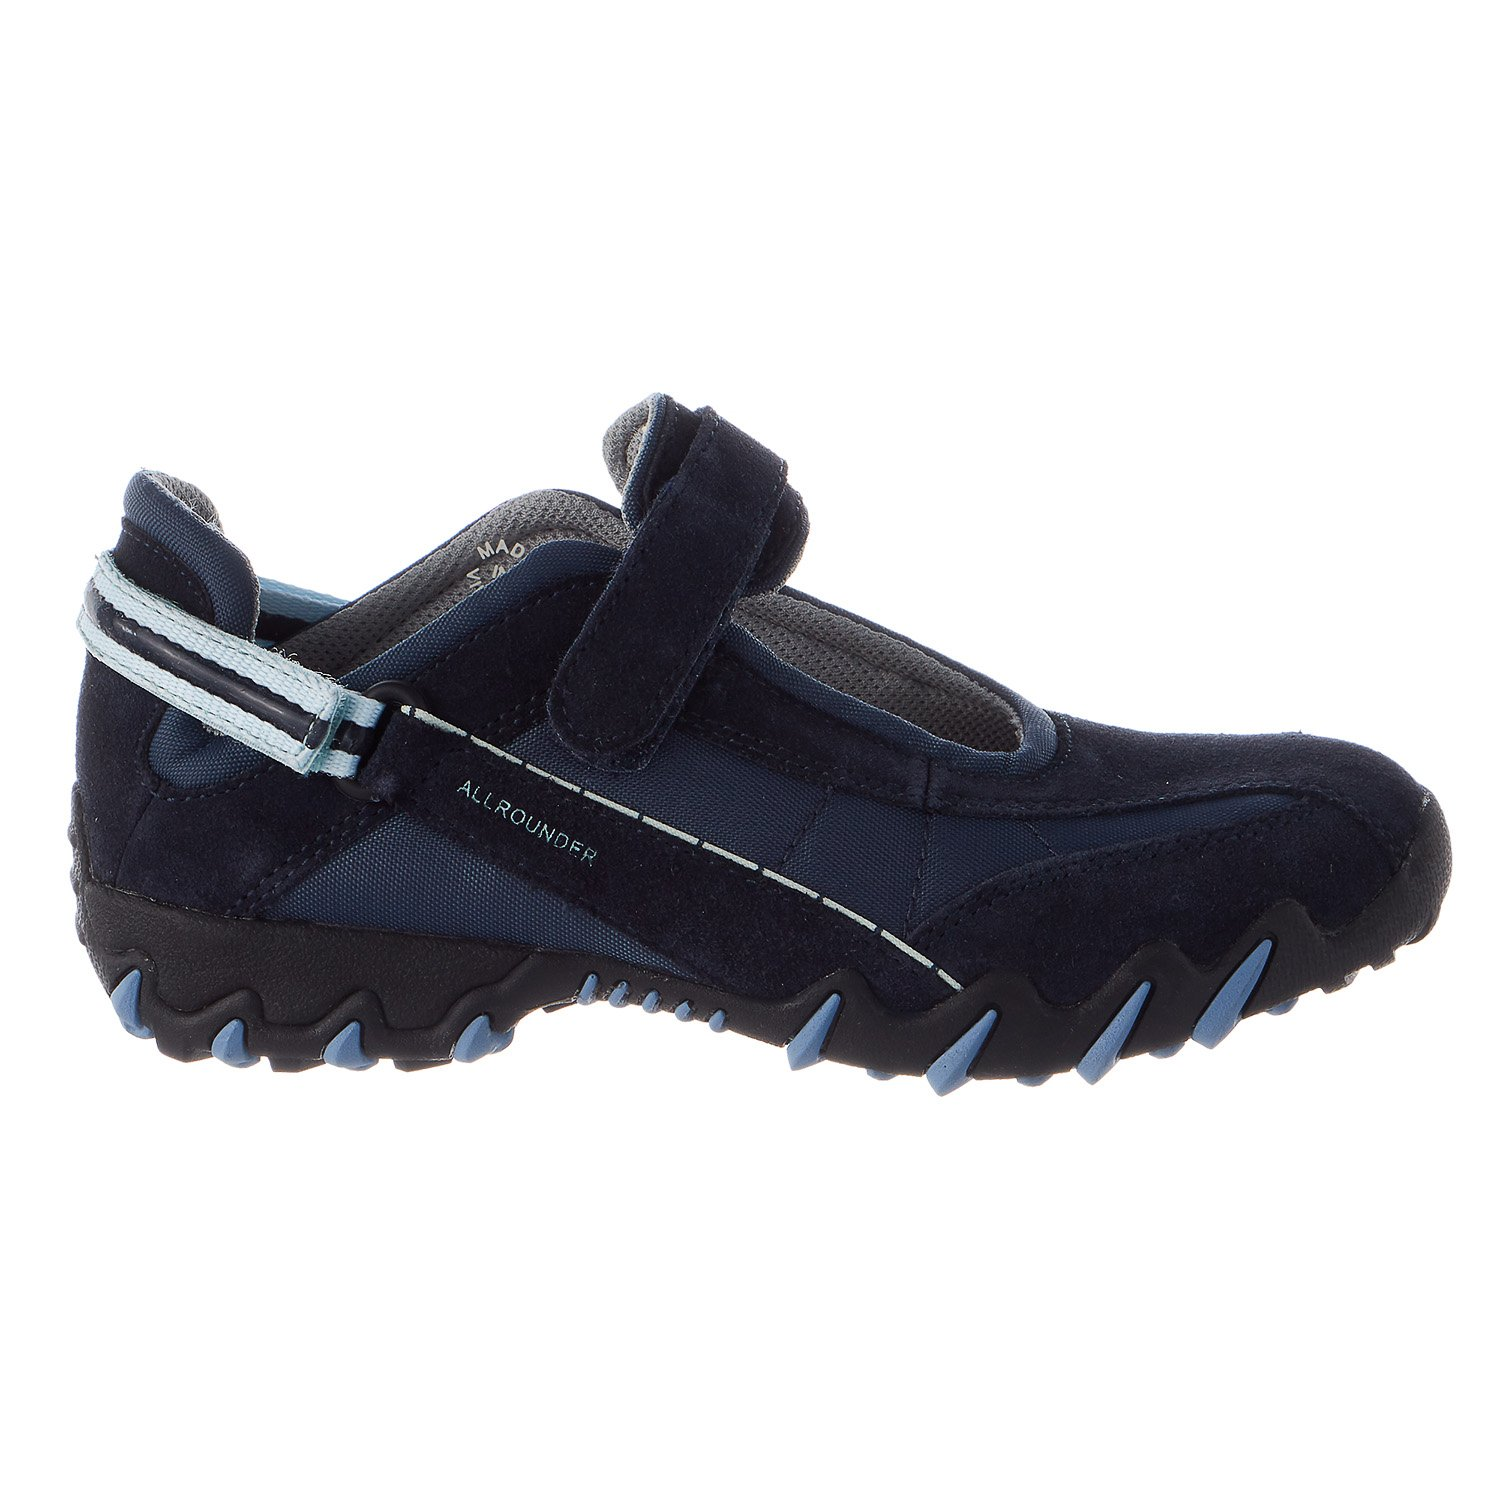 Allrounder by MEPHISTO Niro Mary Jane Flat - Dark Blue Suede/Mesh - Womens - 8.5